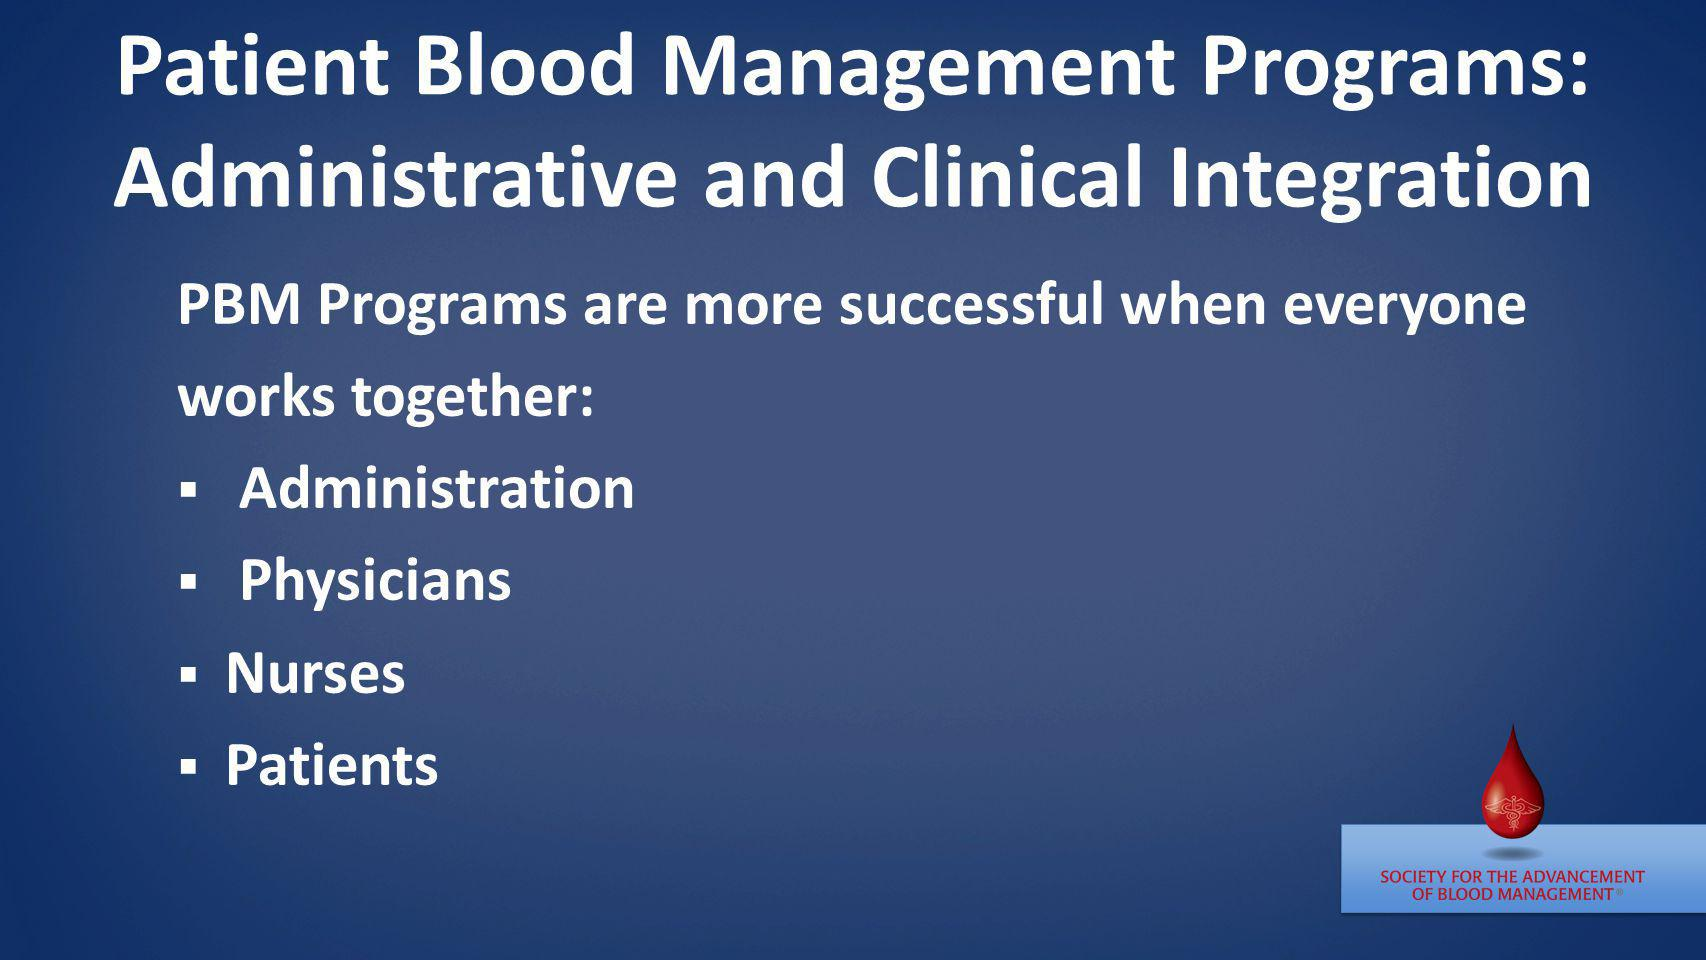 Patient Blood Management Programs: Administrative and Clinical Integration PBM Programs are more successful when everyone works together: Administrati